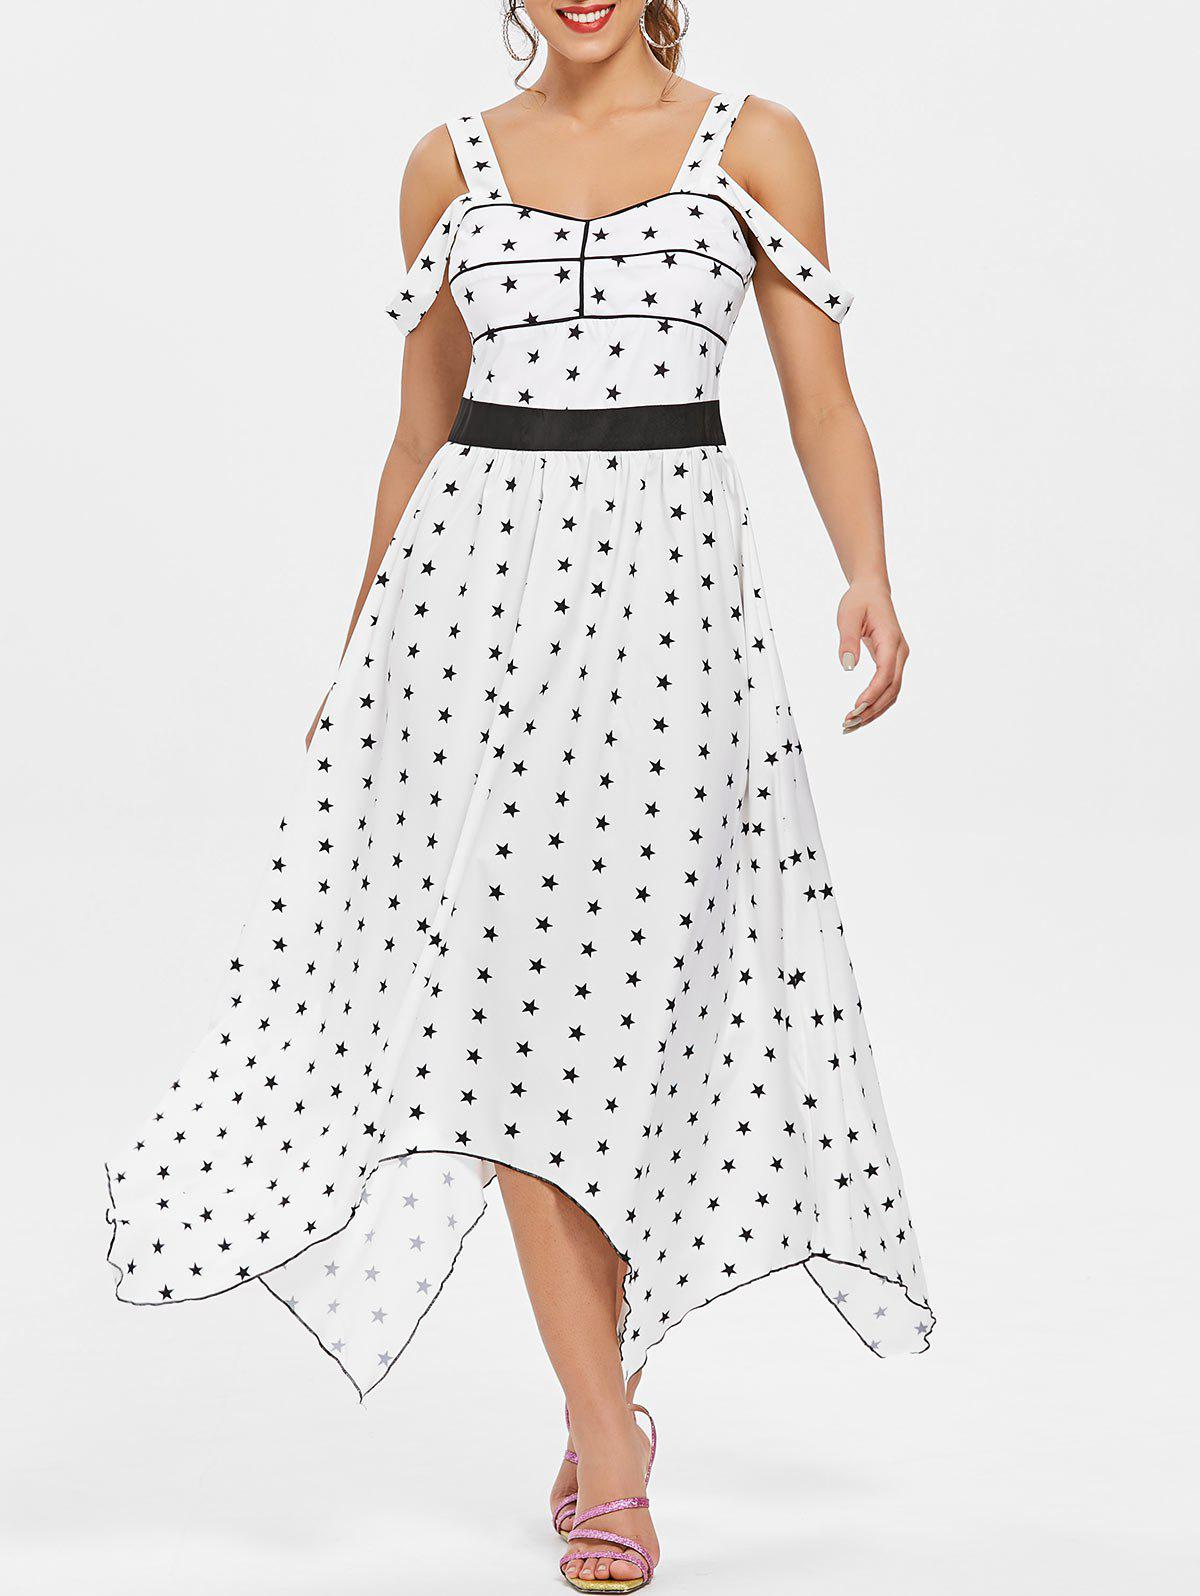 Stars Printed Cold Shoulder Casual Dress - WHITE XL